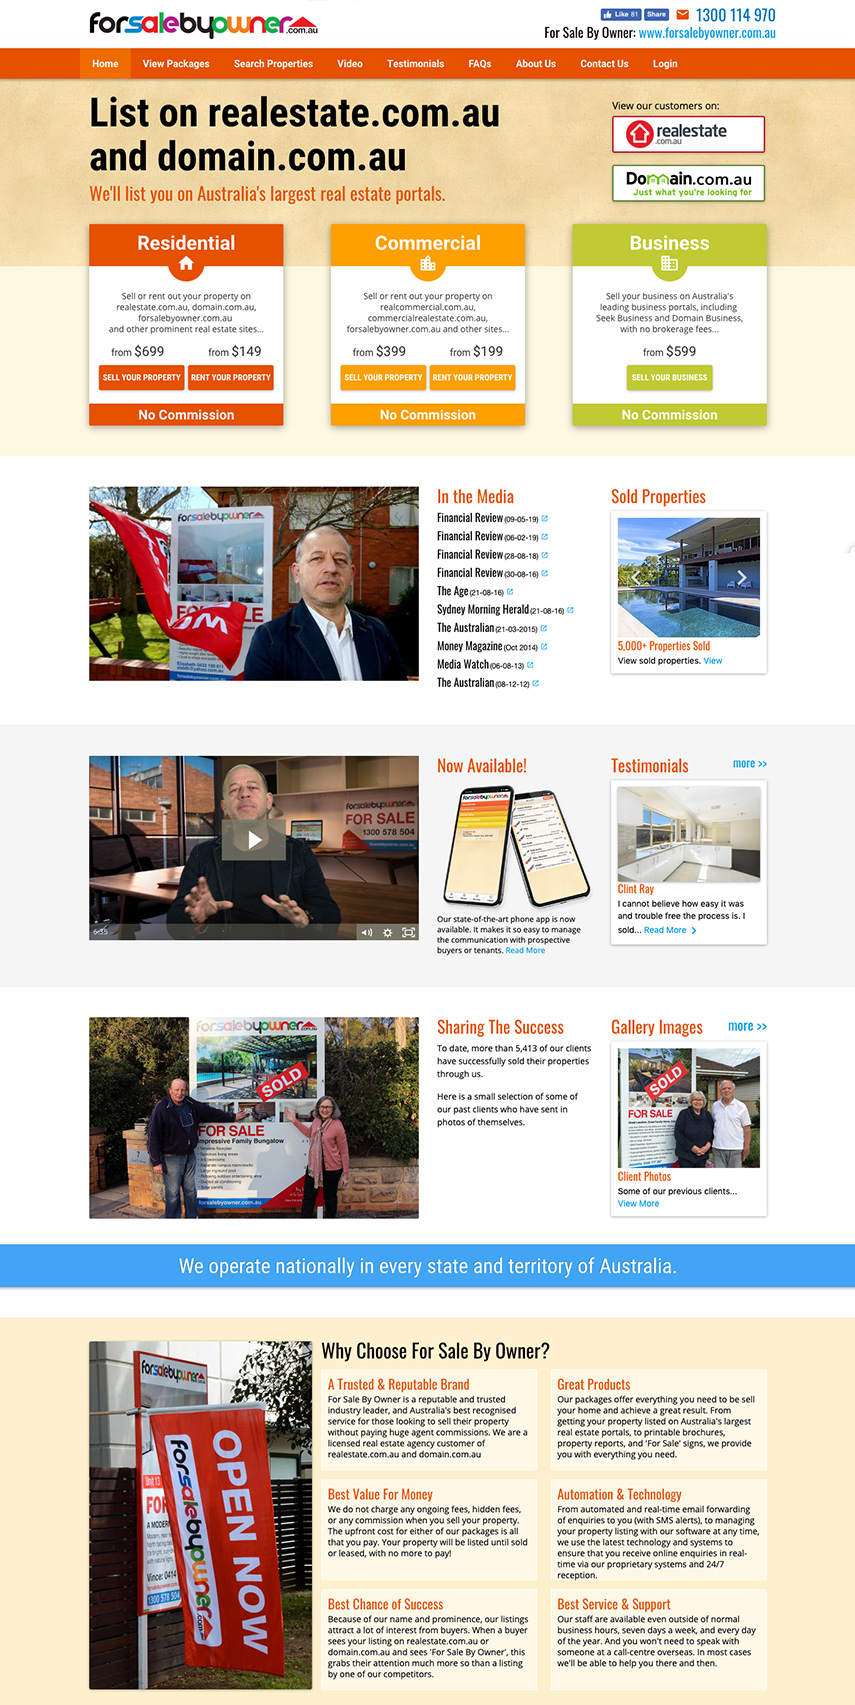 Advertise on other real estate websites